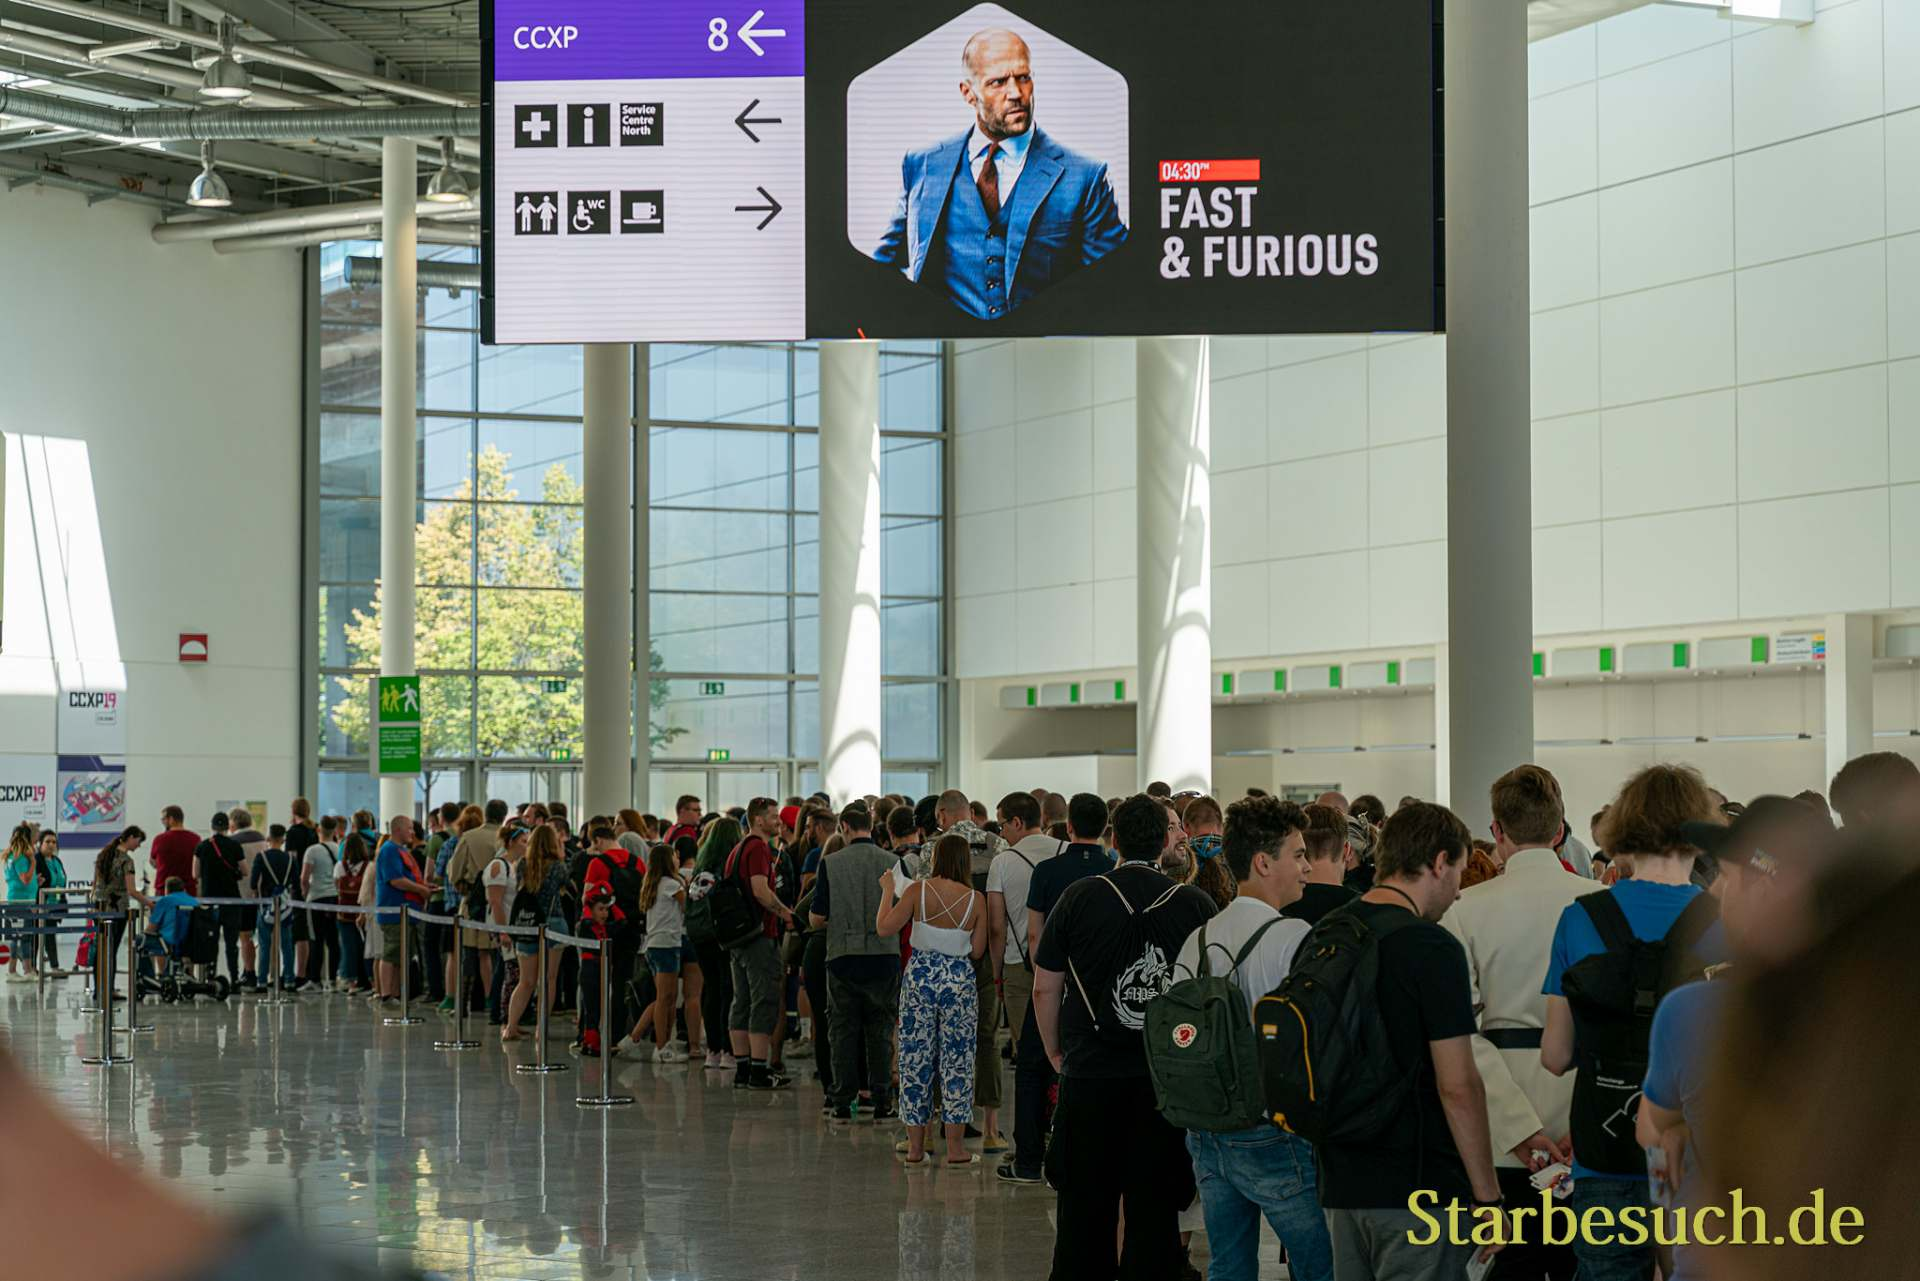 COLOGNE, GERMANY - JUN 28th 2019: Impressions from CCXP Cologne: People waiting to enter the convention